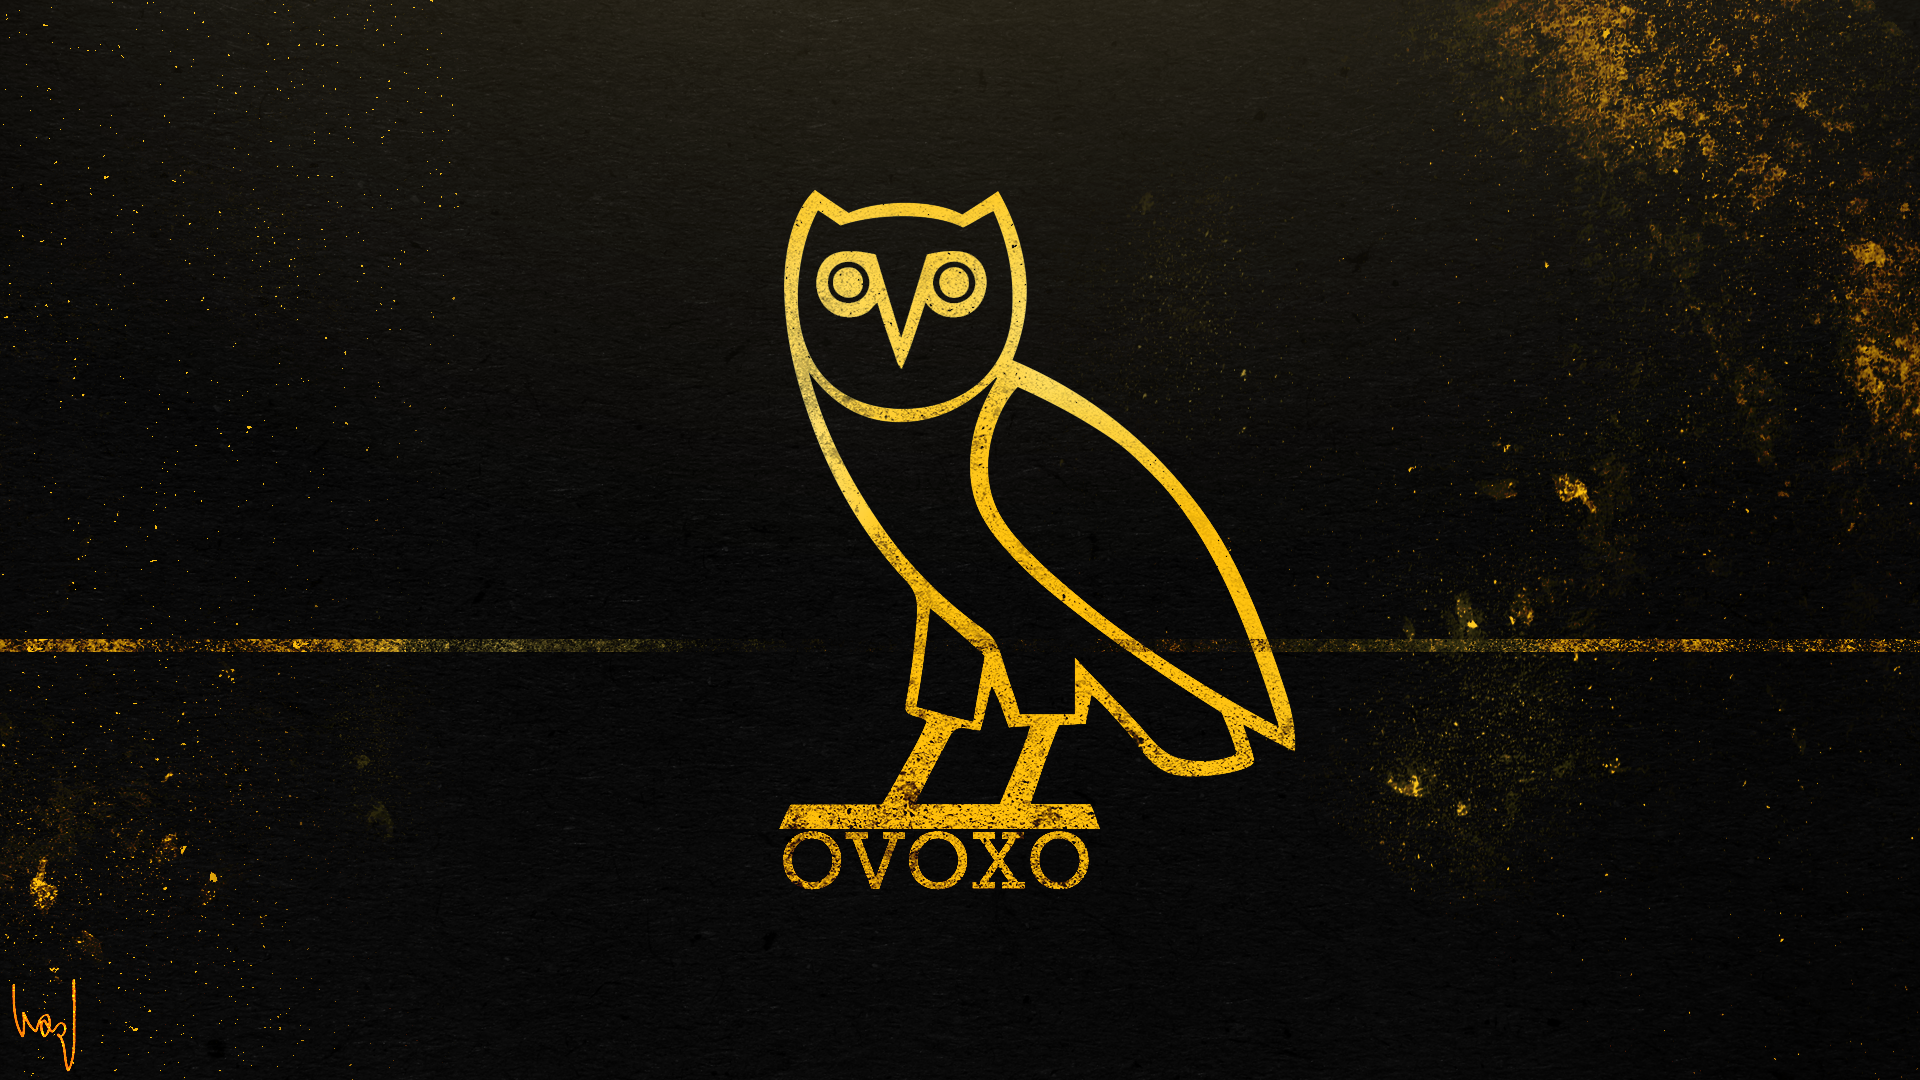 OVOXO Owl Wallpaper by Waq1 on DeviantArt